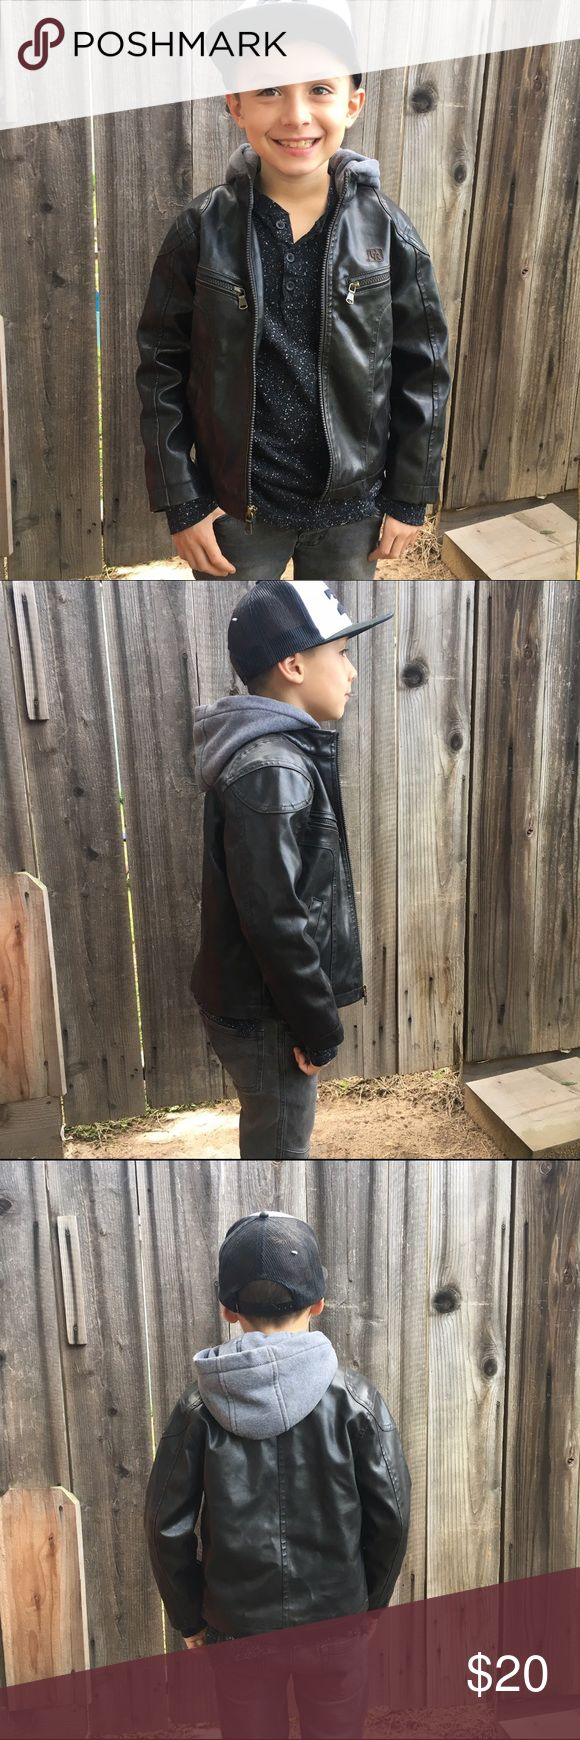 Boys leather jacket Leather jacket in great condition. Has built-in gray hood. The jacket is black but has hints of brown around the edges. Urban Republic Jackets & Coats